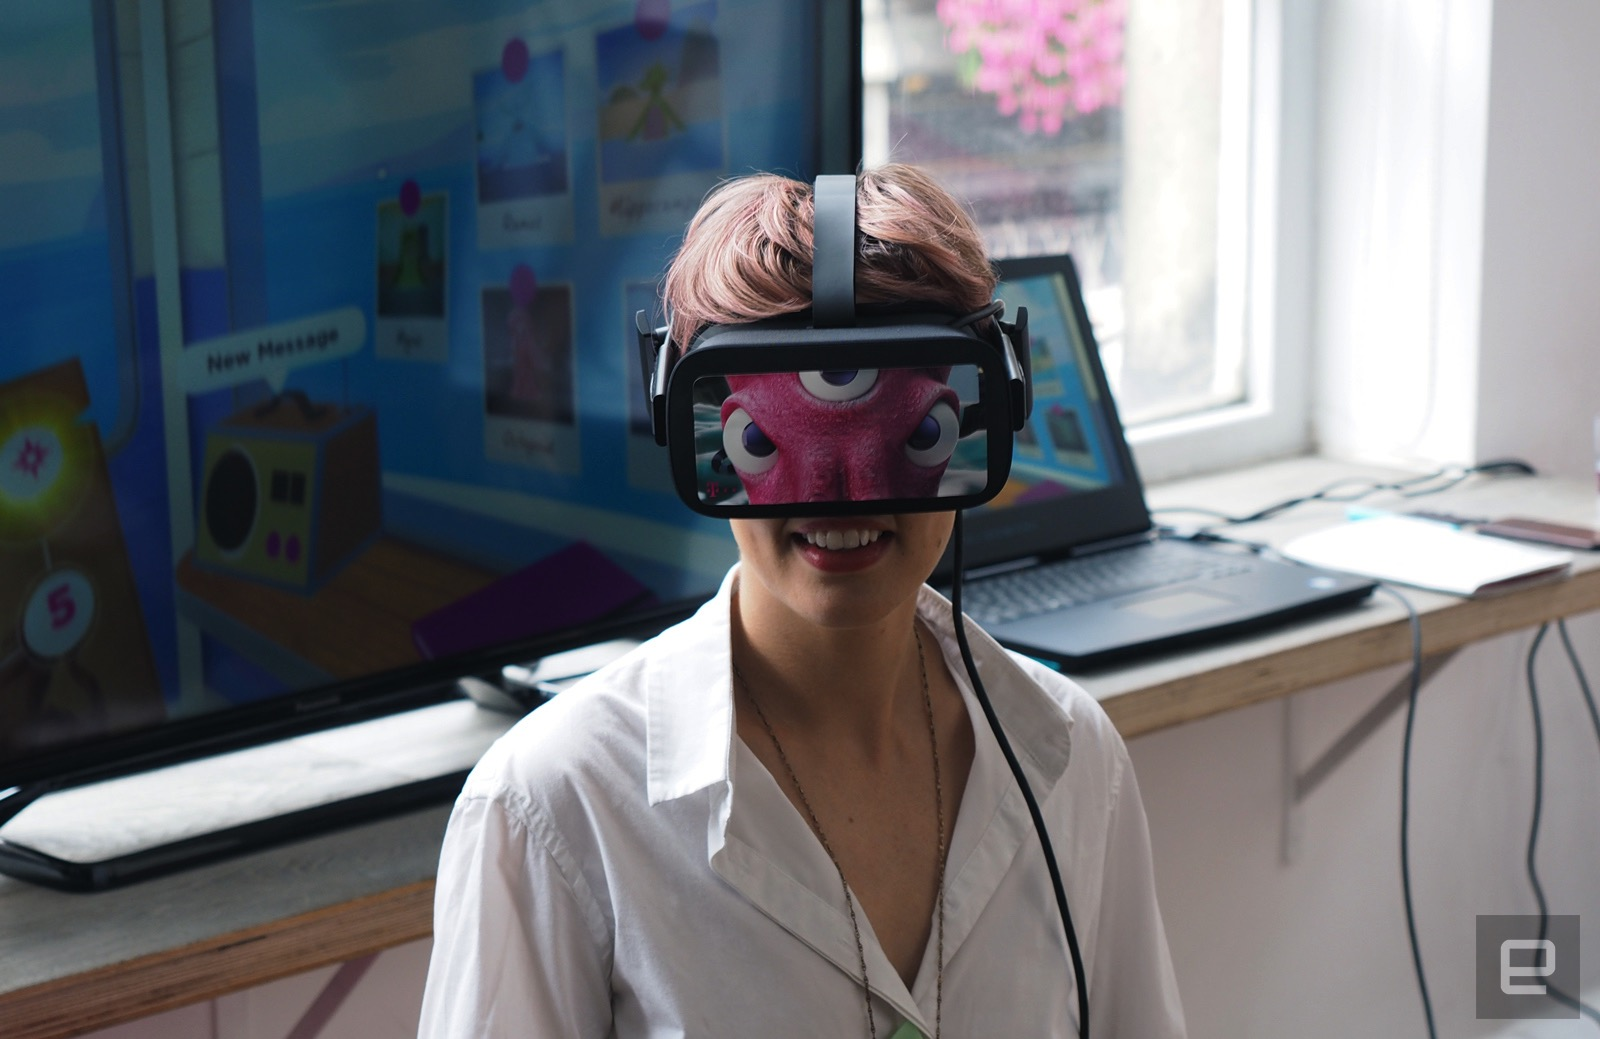 Top 10 Best VR Gaming Headset to Buy This Year - The Best List